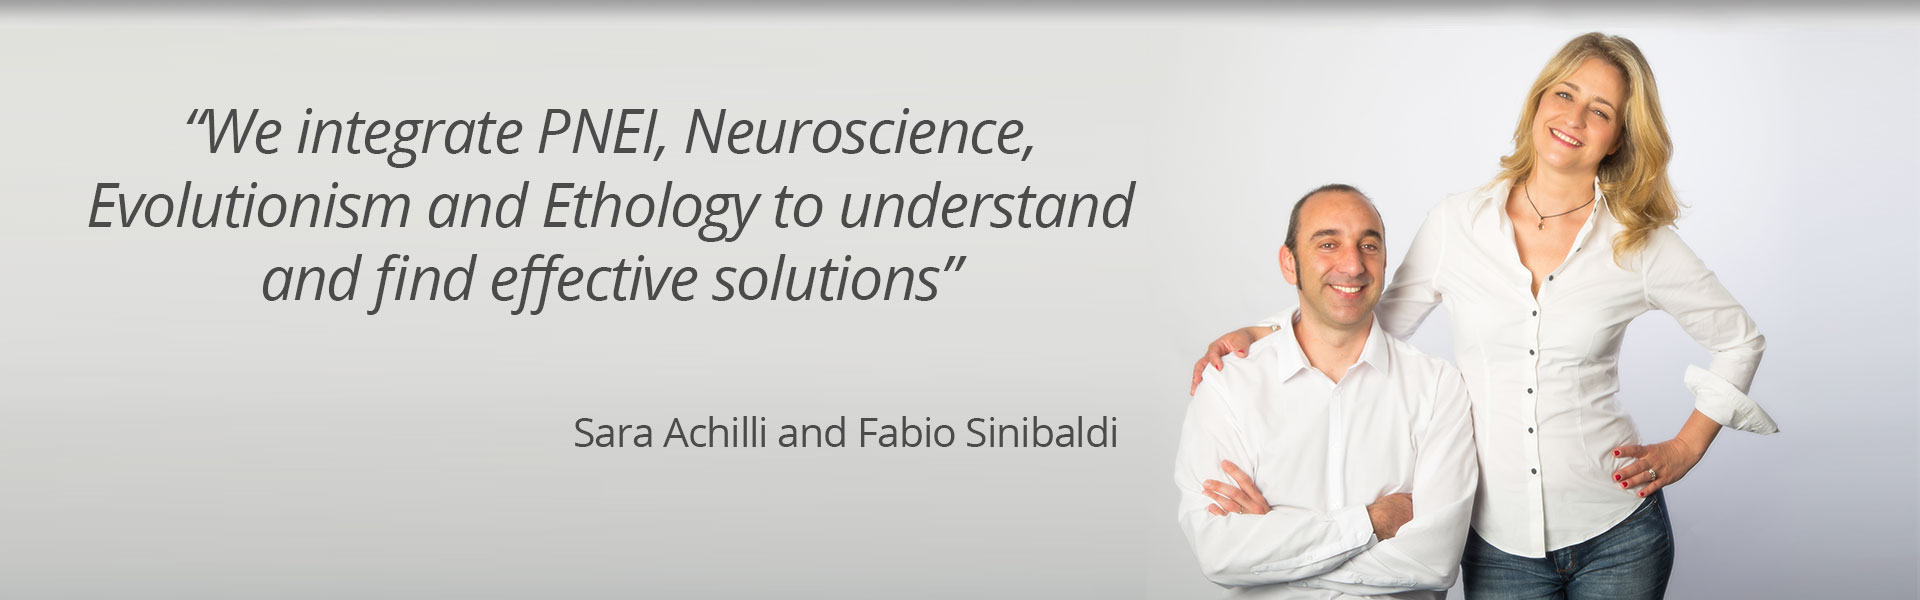 fabio sinibaldi sara achilli tool and techniques mind and body